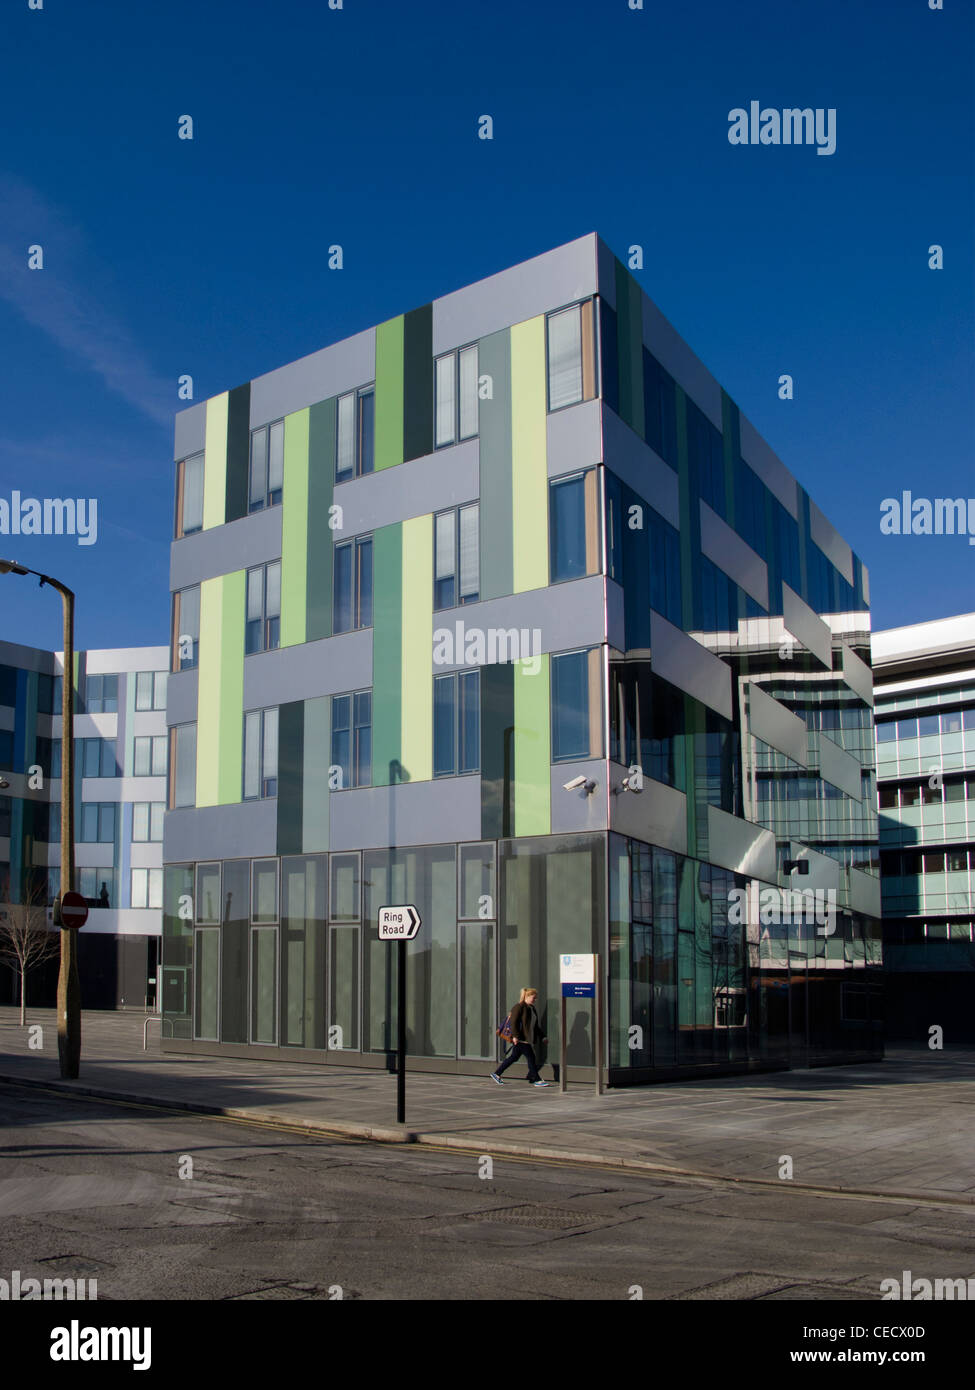 modern architecture buildings. university of sheffield art buildings modern architecture in the heart south yorkshire england